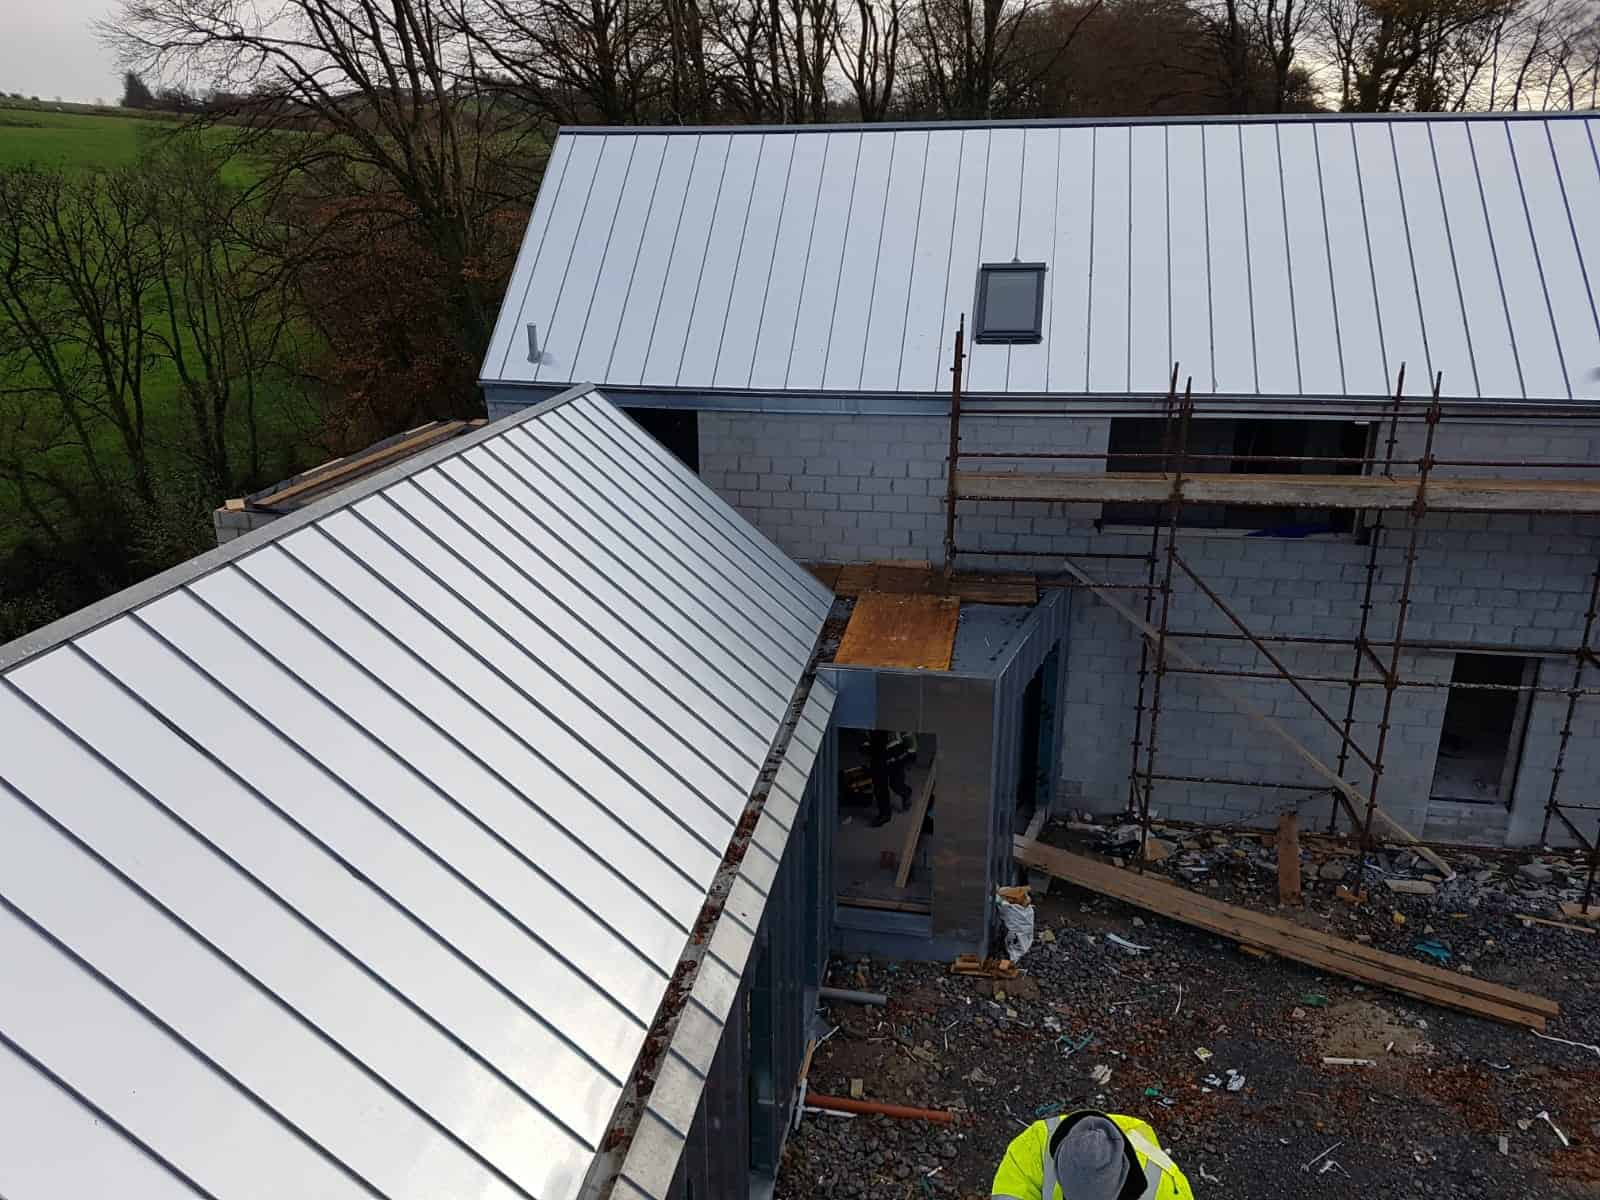 3 - house Cork City - pitched zinc roof with internal gutter